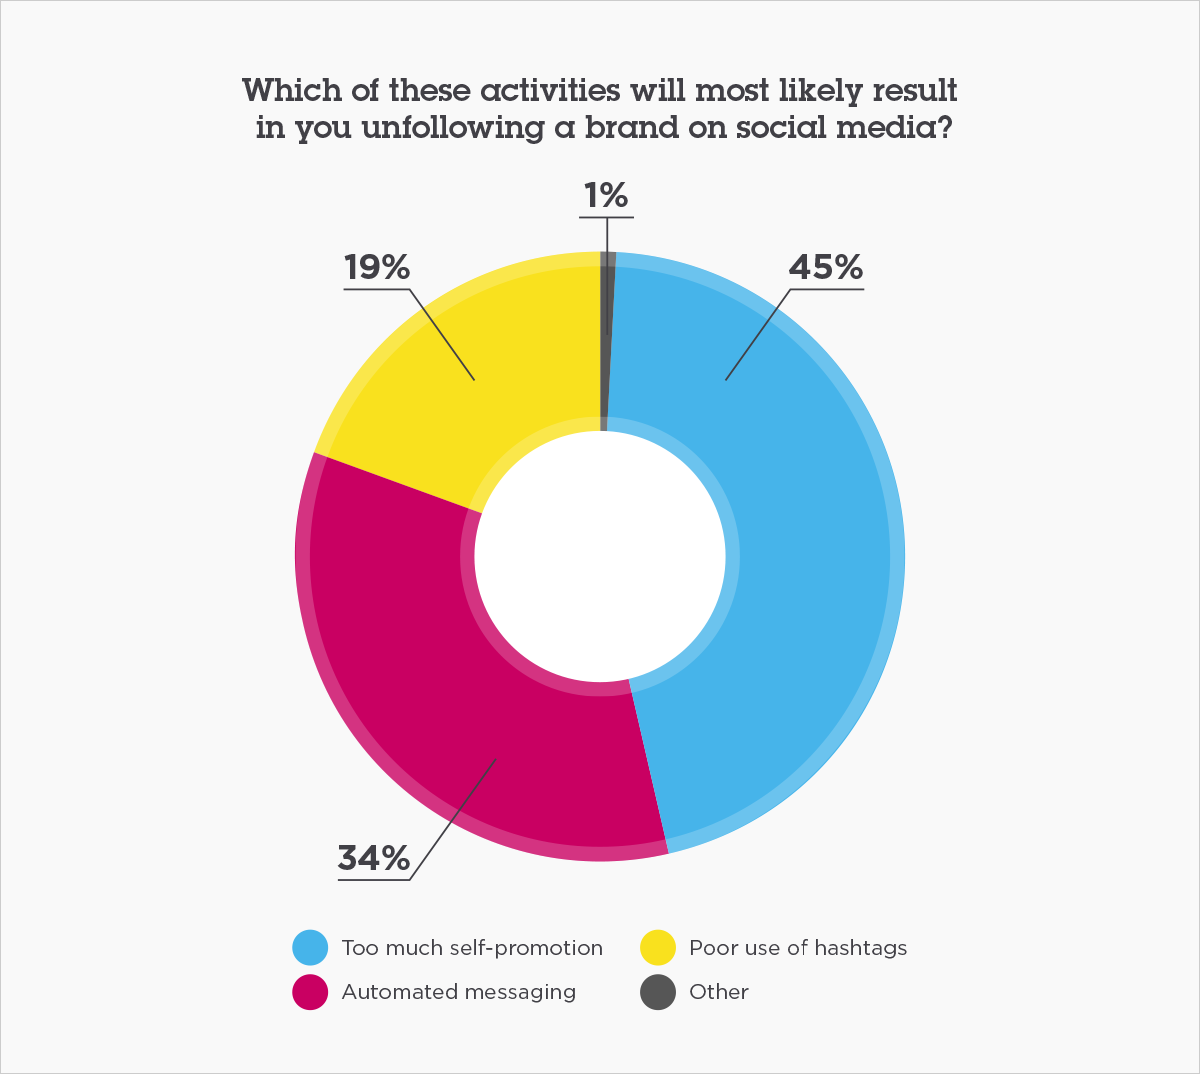 Which of these activities will most likely result in you unfollowing a brand on social media?